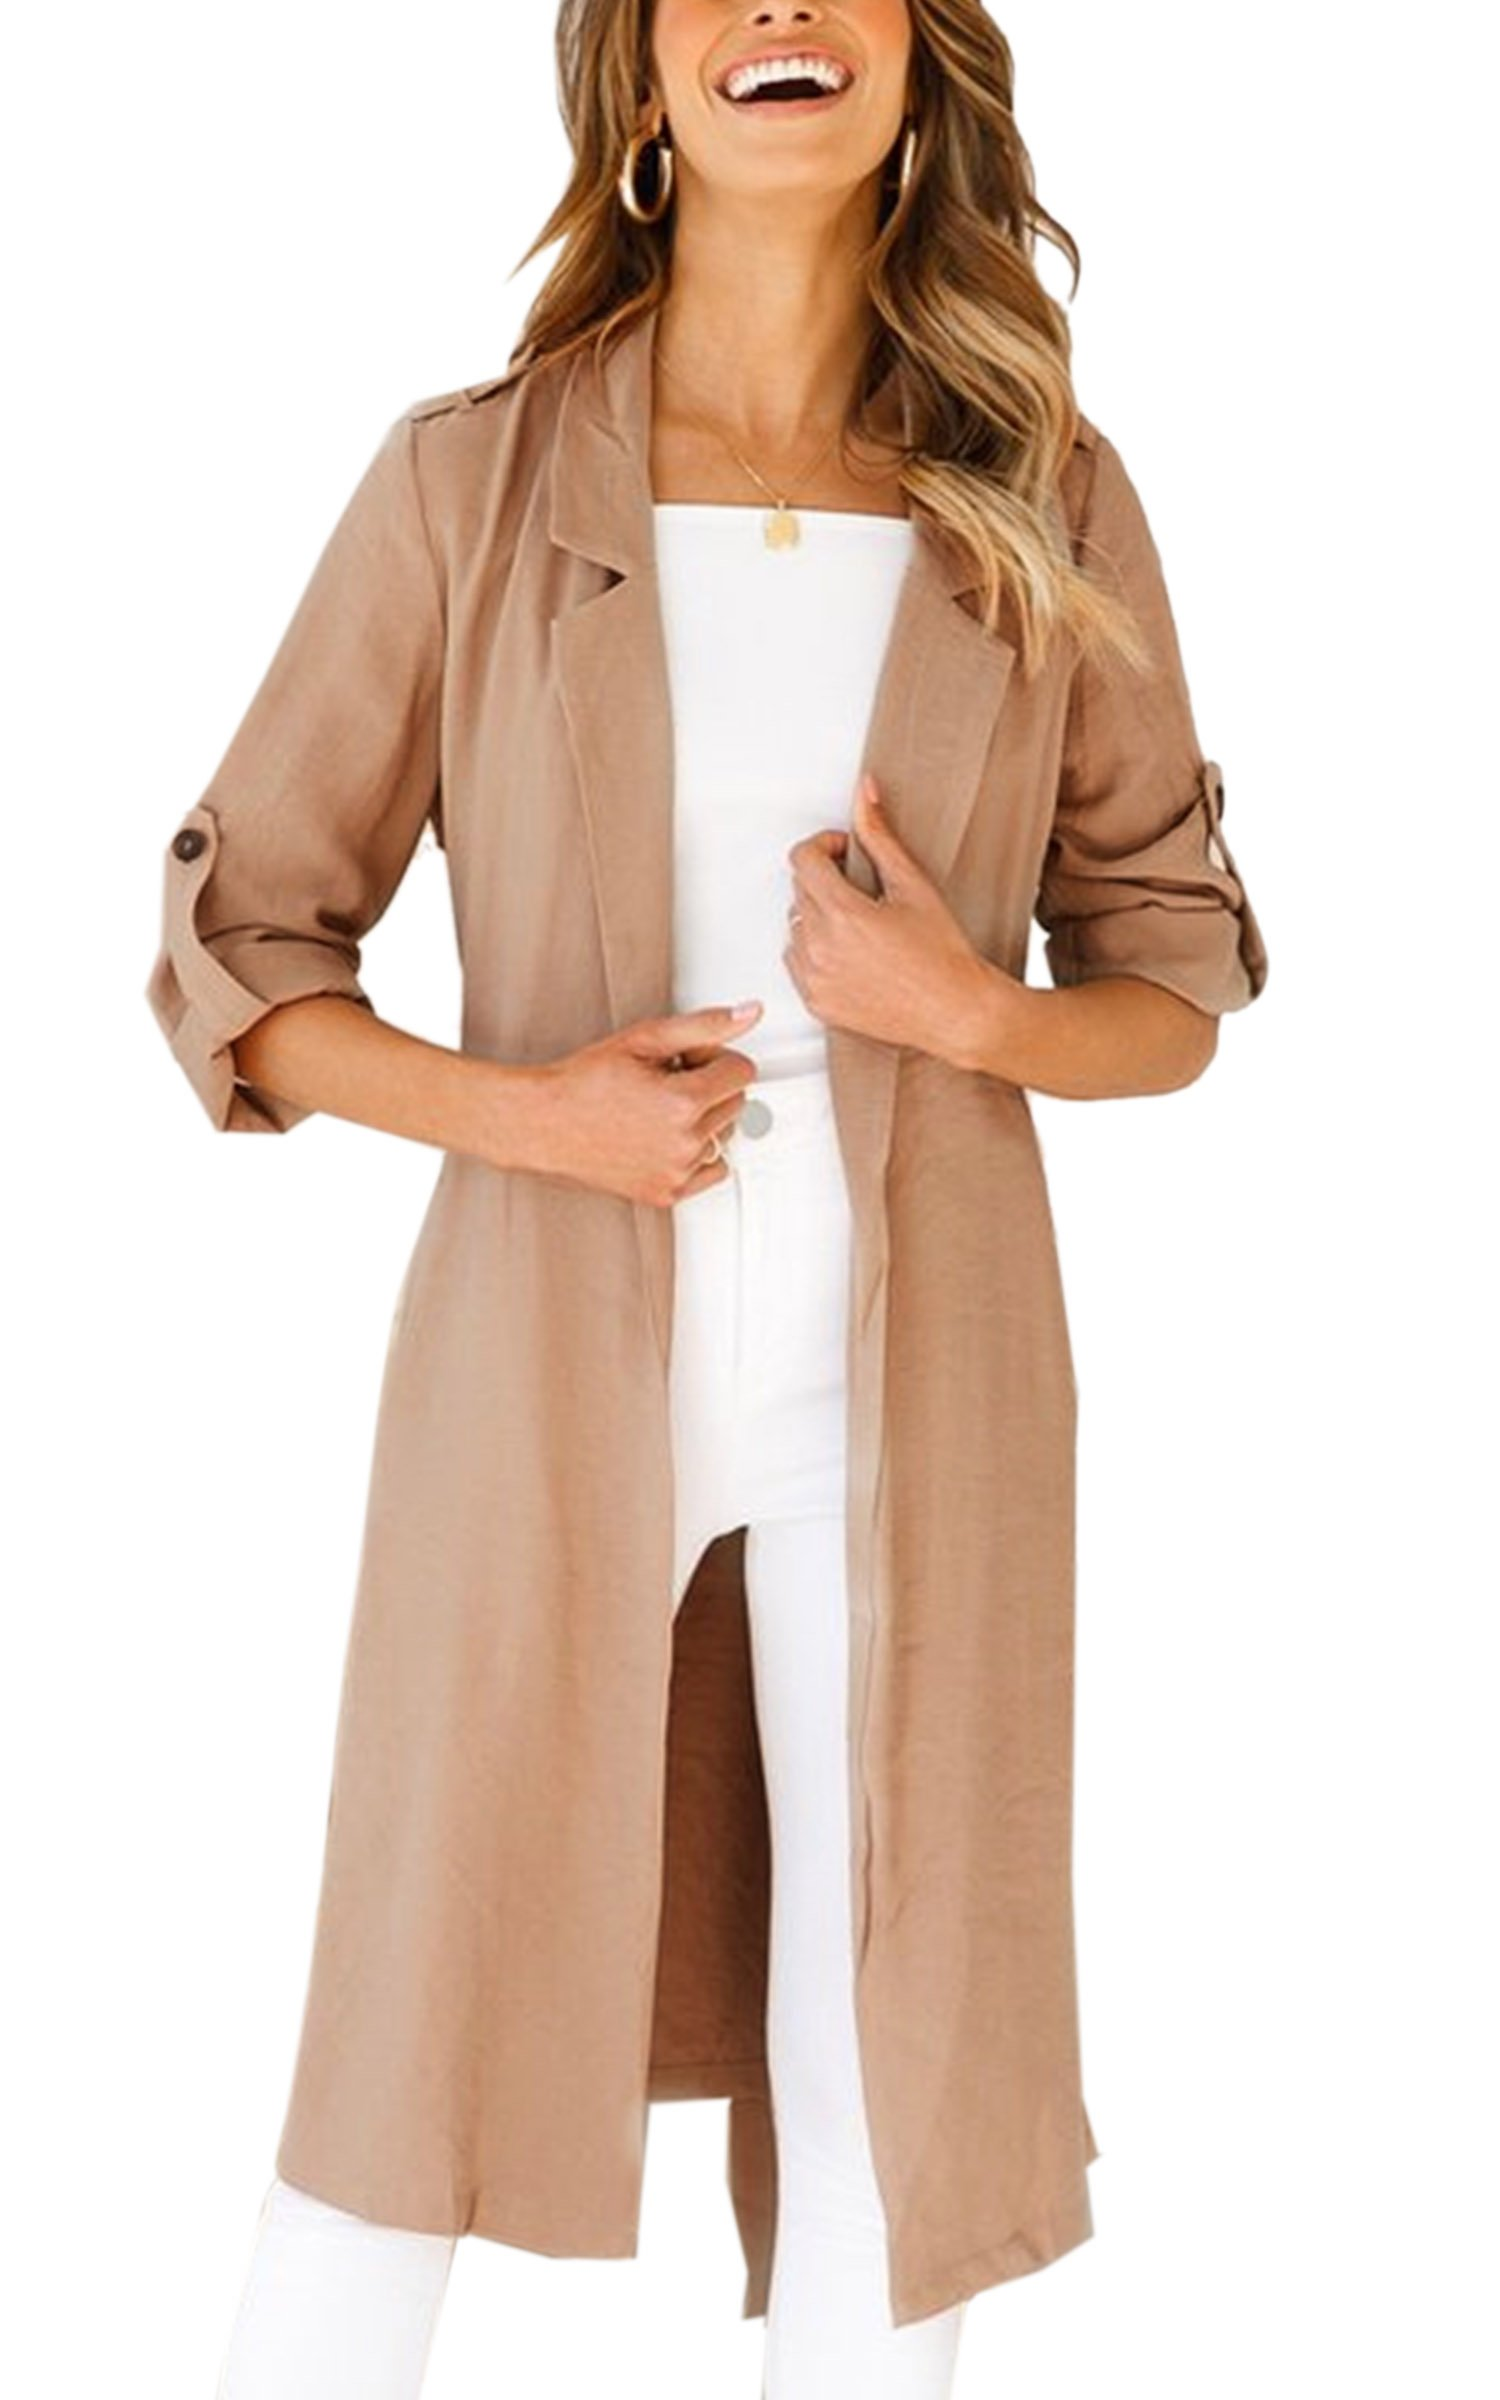 Angashion Women's Lapel Long Roll-up Sleeves Open Front Lapel Long Cardiagn Trench Coat Tops with Pockets Khaki M